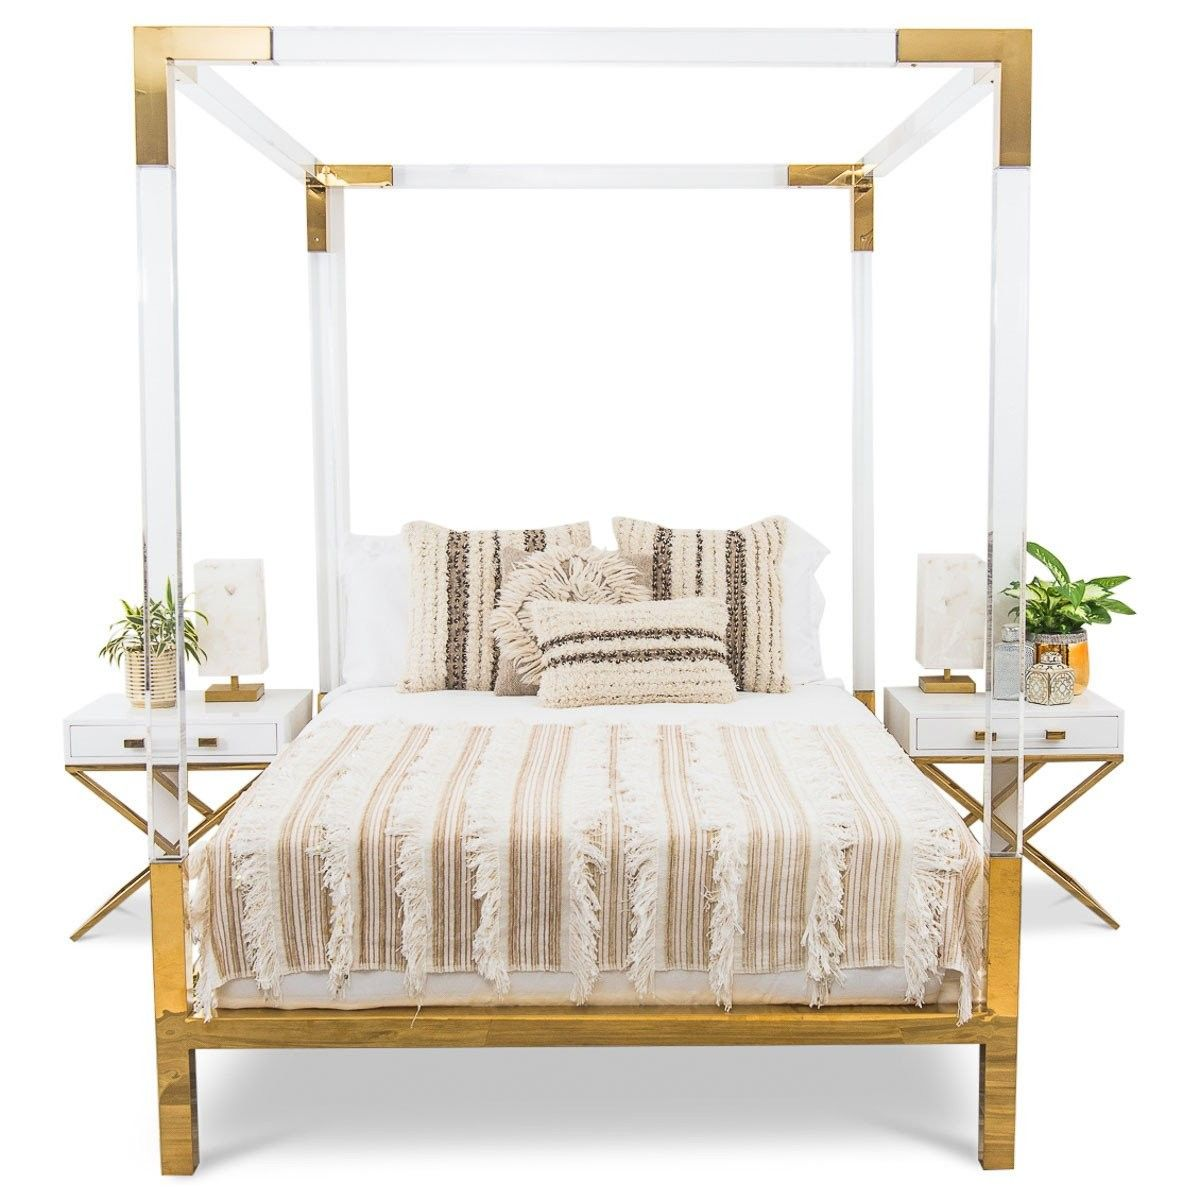 Made with ultratrendy lucite, this bed frame takes a